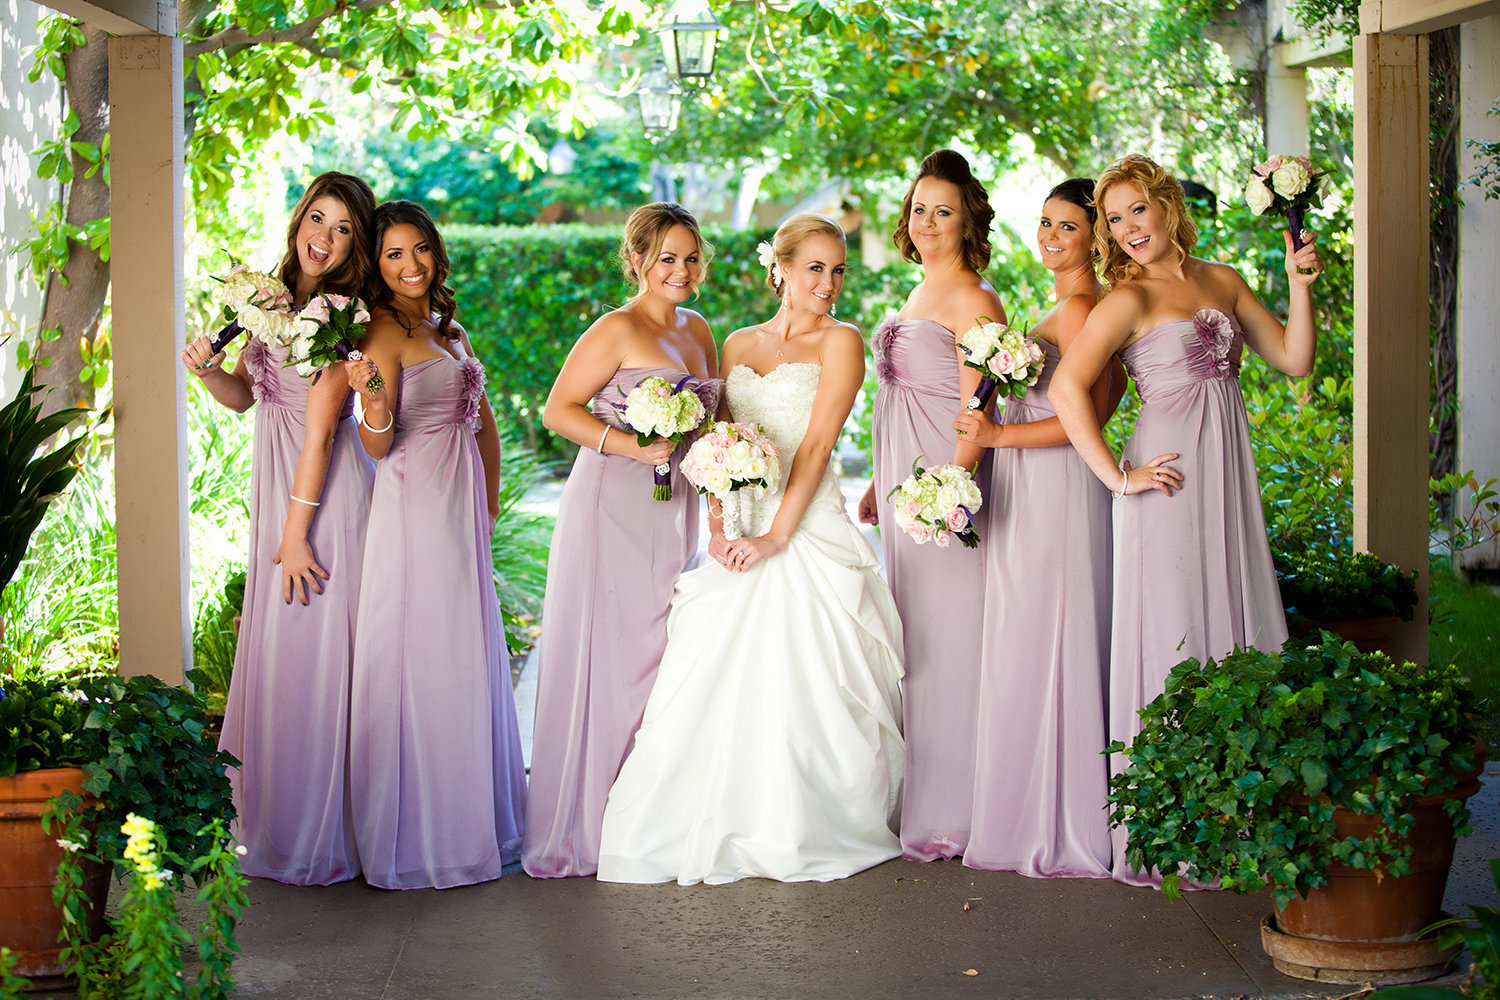 Bridesmaids posing ideas for a more natural look